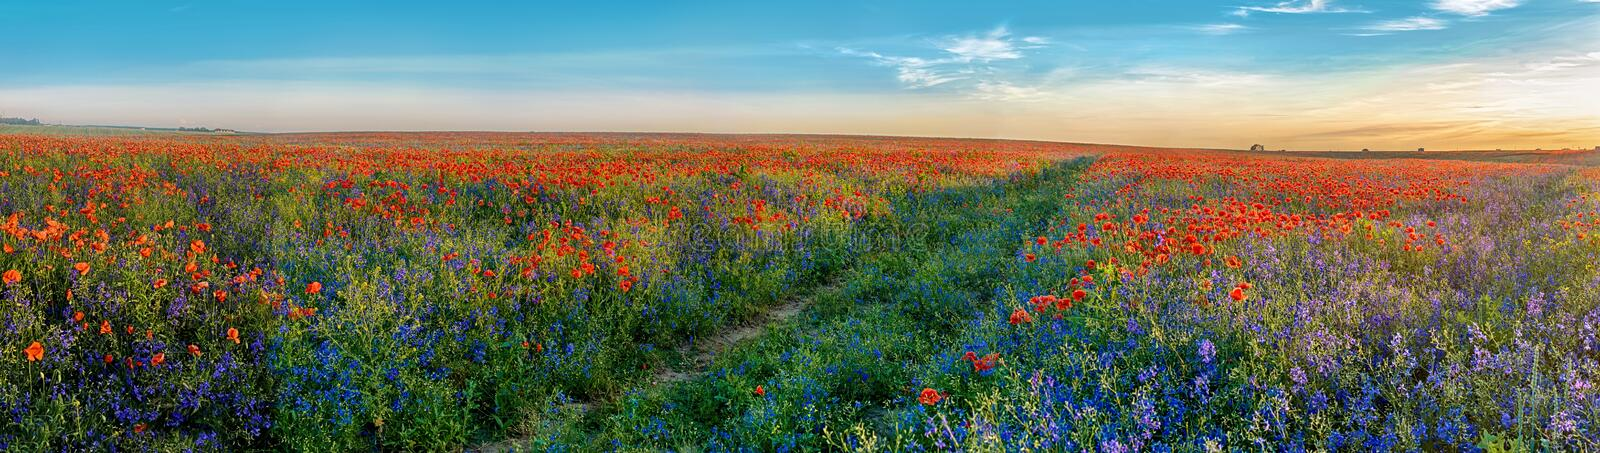 Big Panorama of poppies and bellsflowers field with path royalty free stock images